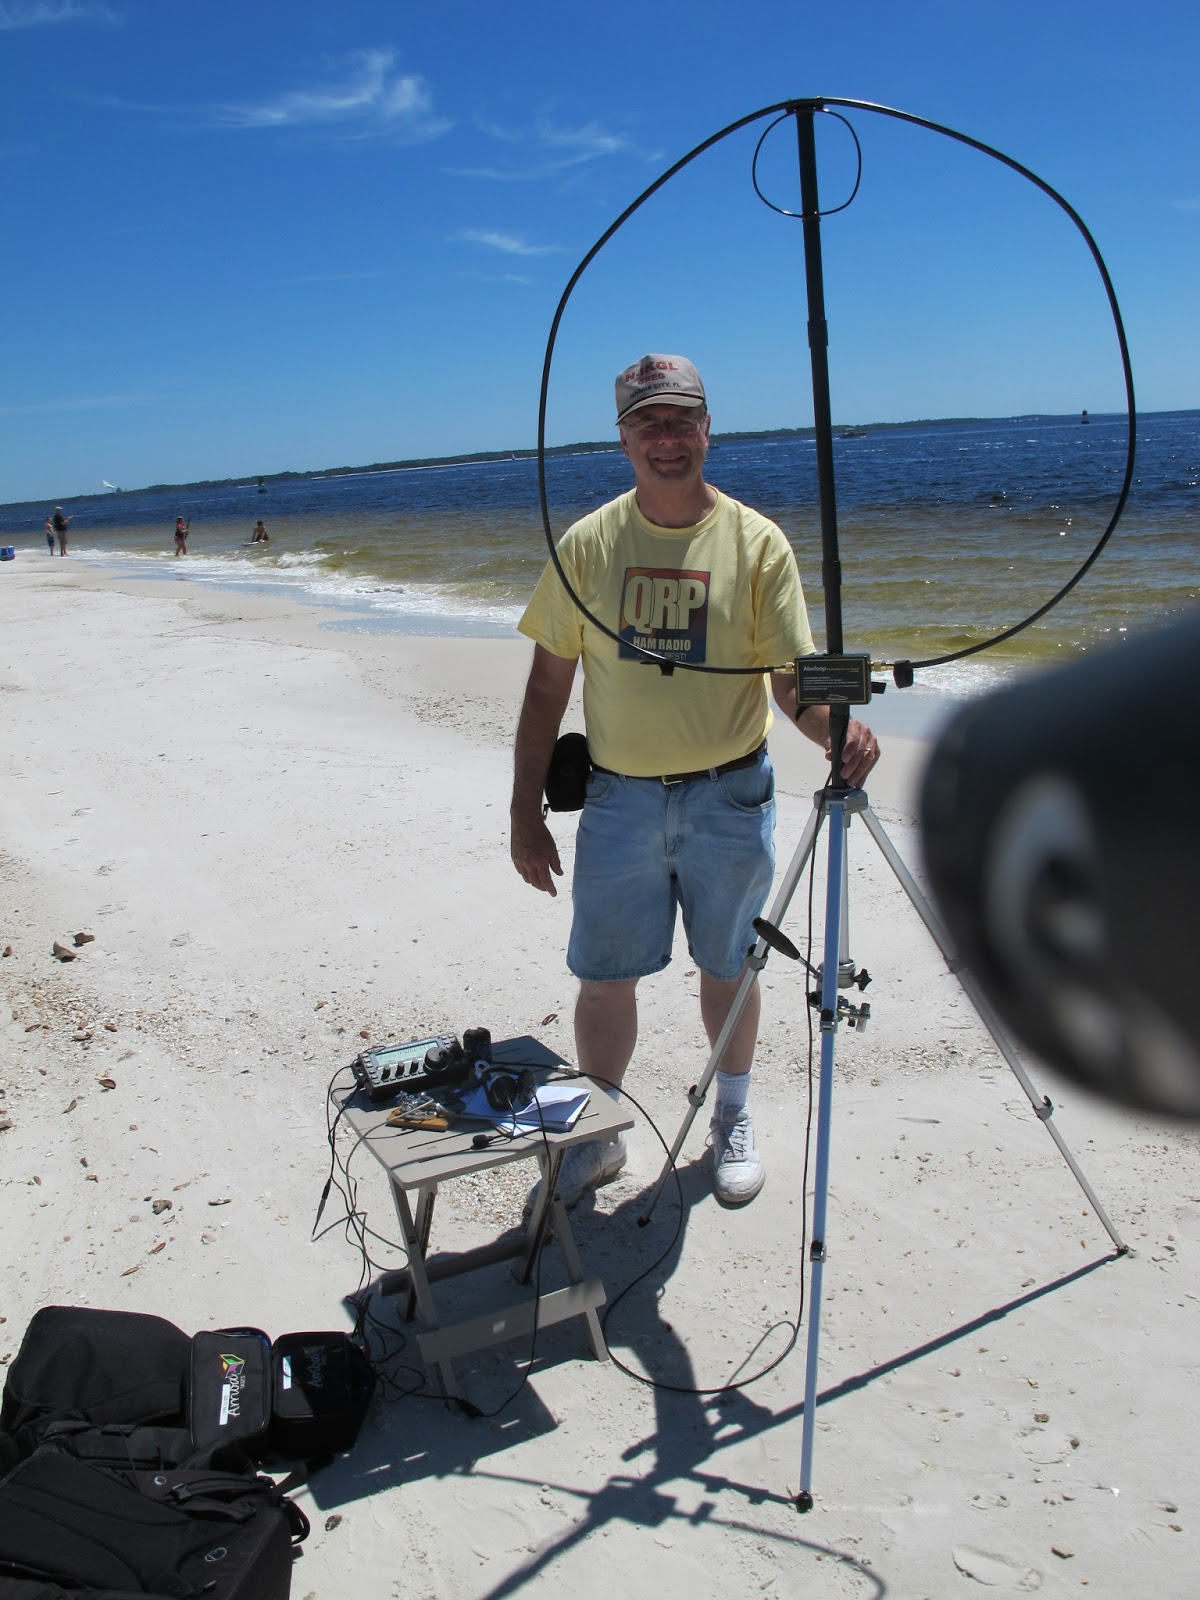 Newsuperantenna as well Qsl Portable2 together with 261901 Can You Help Identify Portable Antenna in addition Antenna Tower besides Hartley. on tripod for ham radio antenna